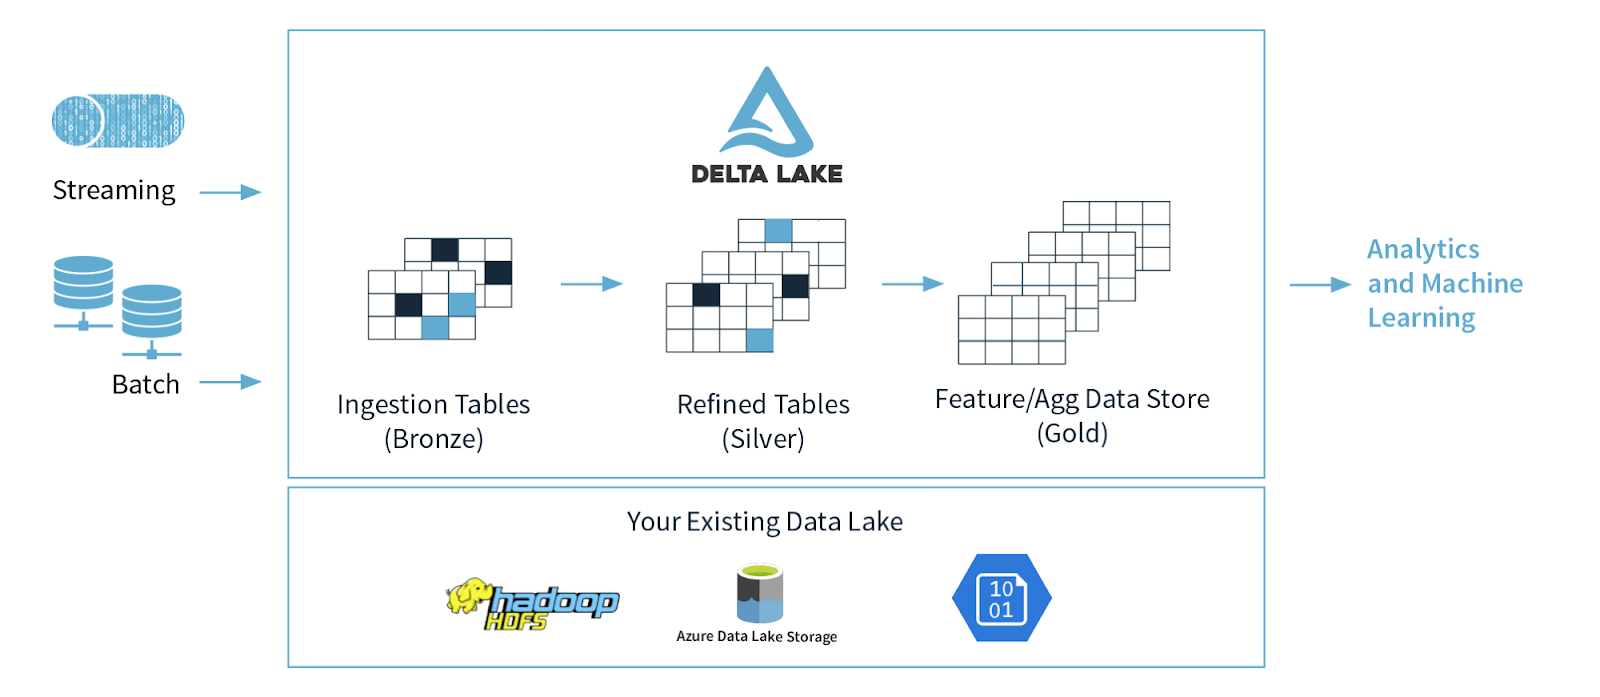 Process batch and streaming data with Delta Lake on your existing Azure data lake, including Azure Data Lake Storage, Hadoop File System (HDFS) and Azure Blob Storage